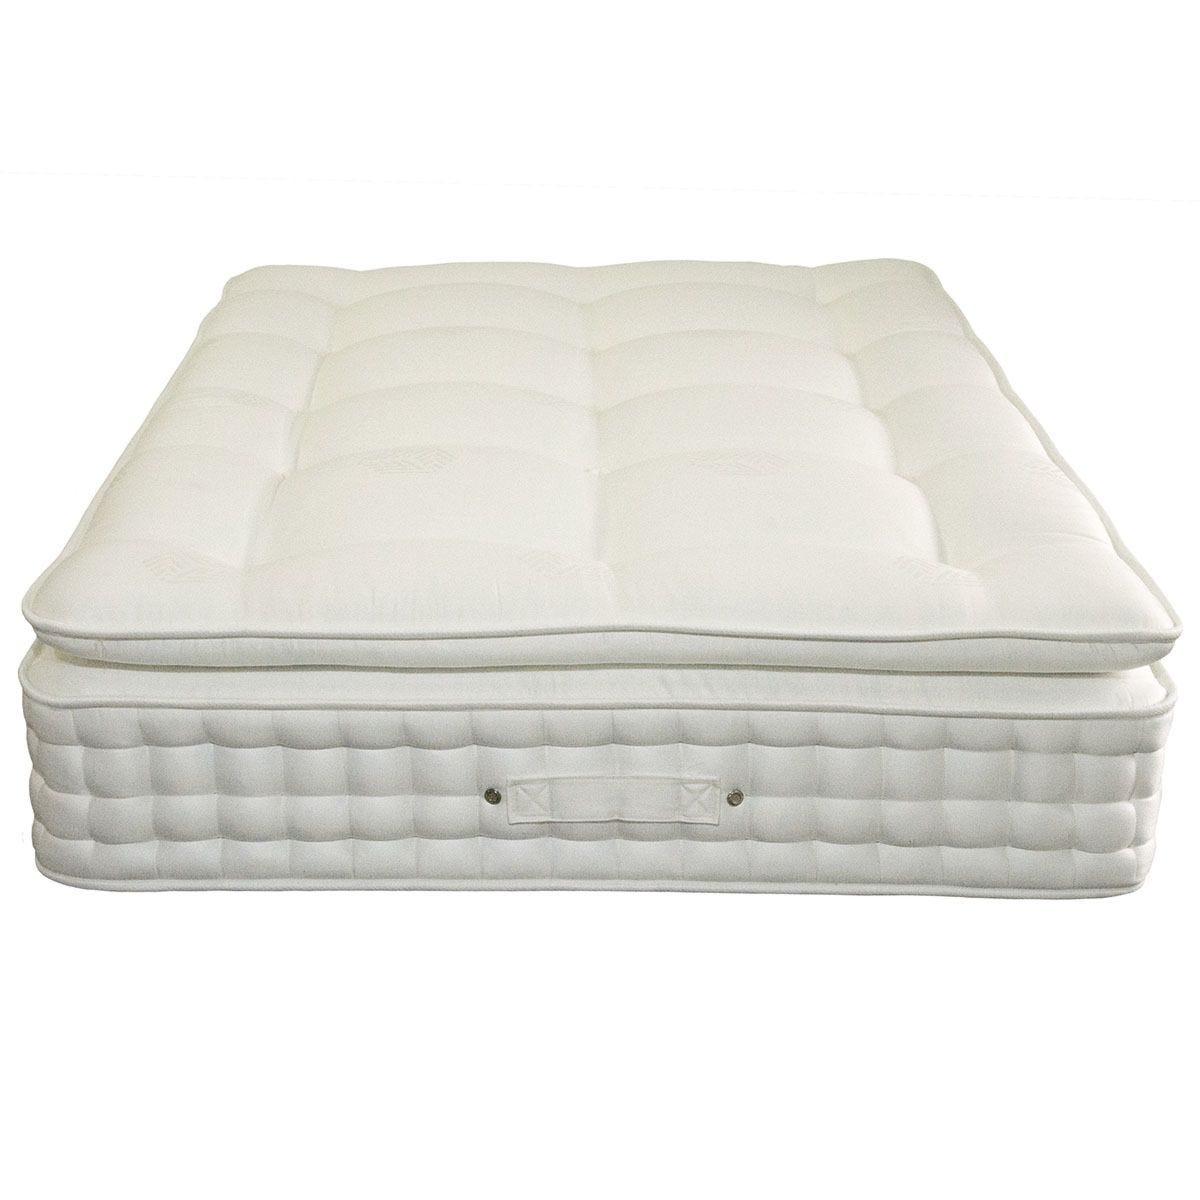 Comfy Deluxe Pillow Top 1500 Pocket Memory Mattress - White